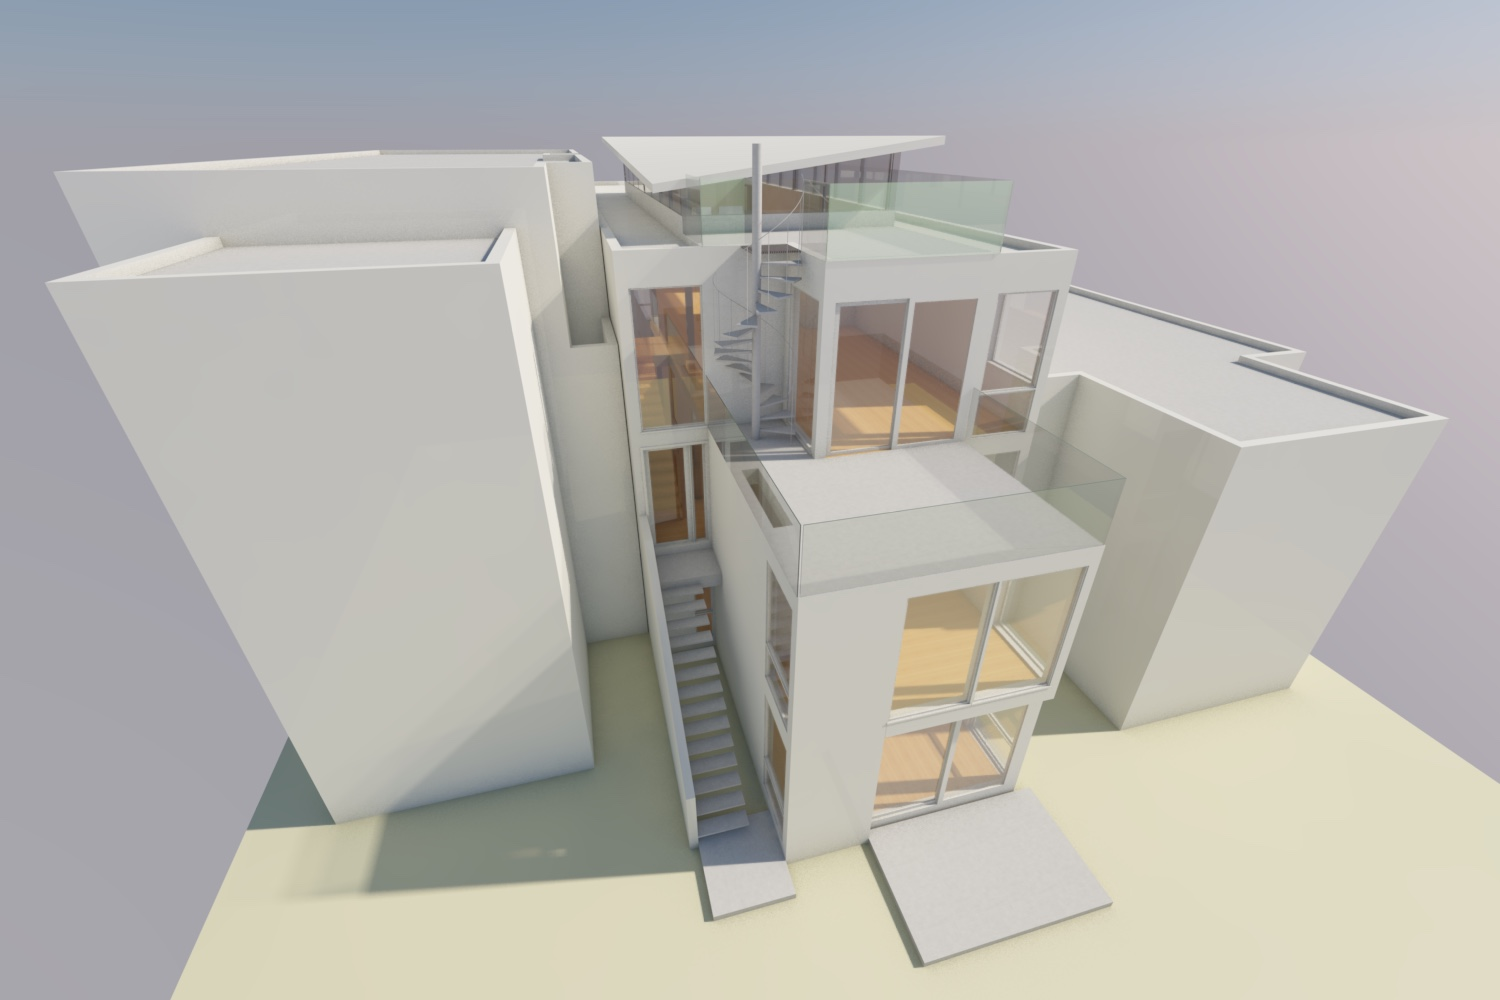 The master bedroom is below the terrace, away from the street and with views and access to the garden.